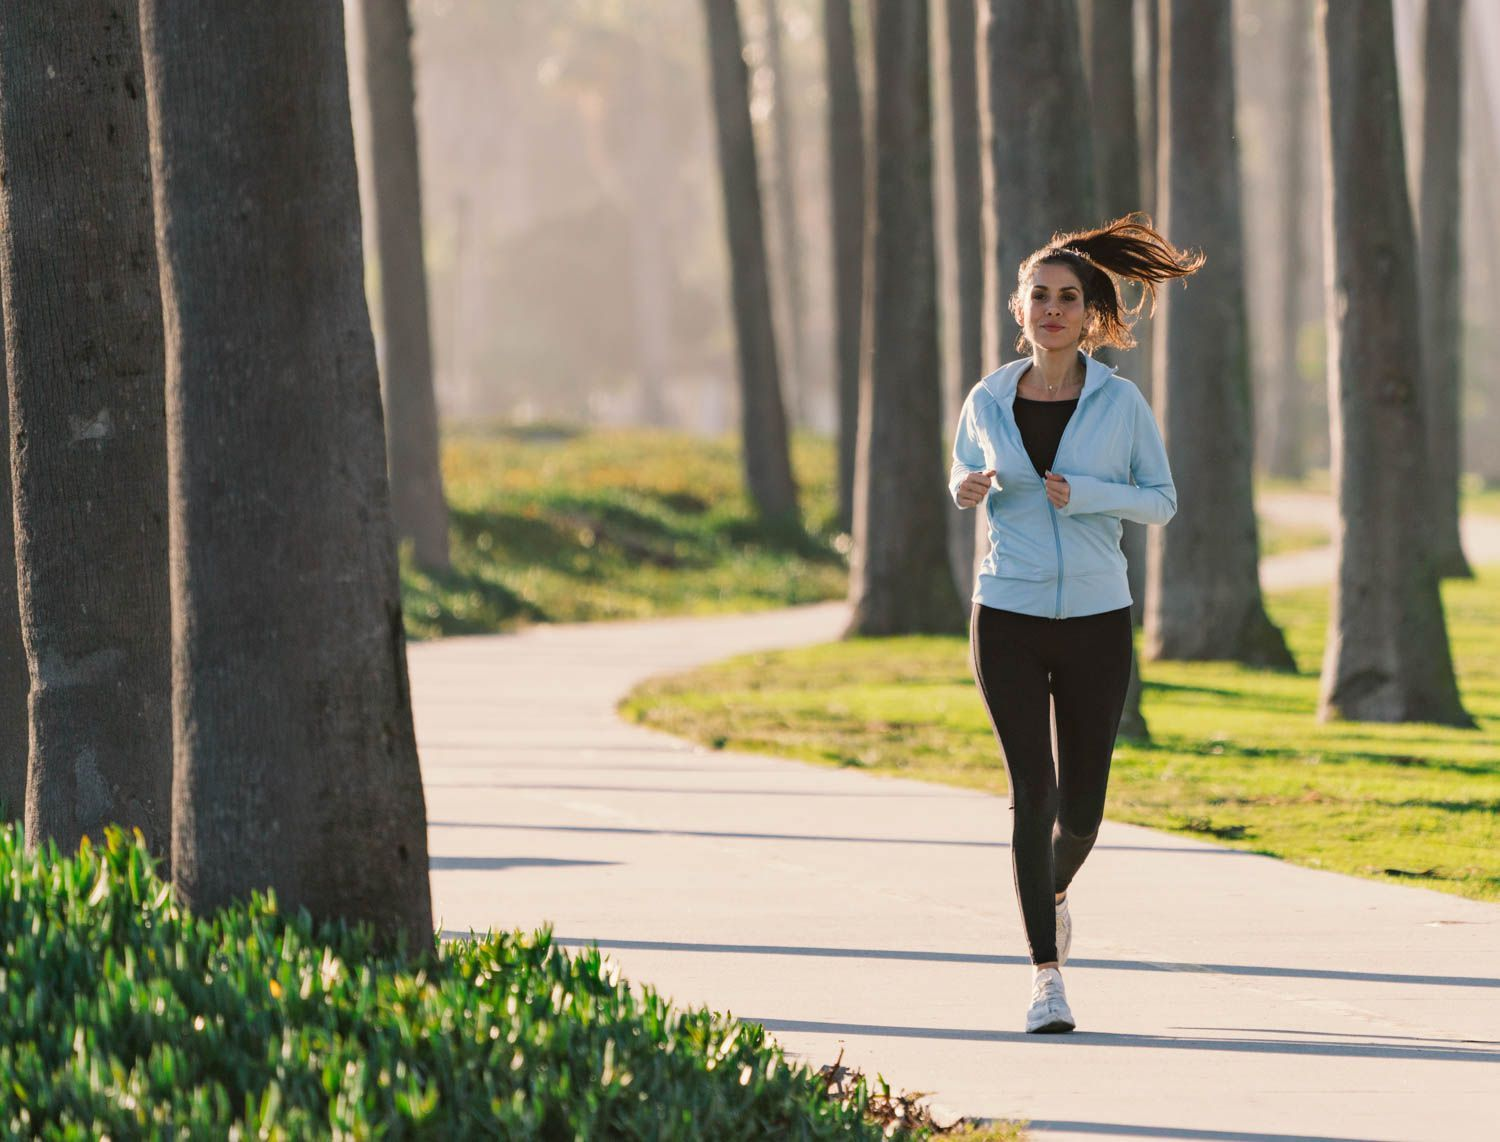 Essential guide to runnning for beginners